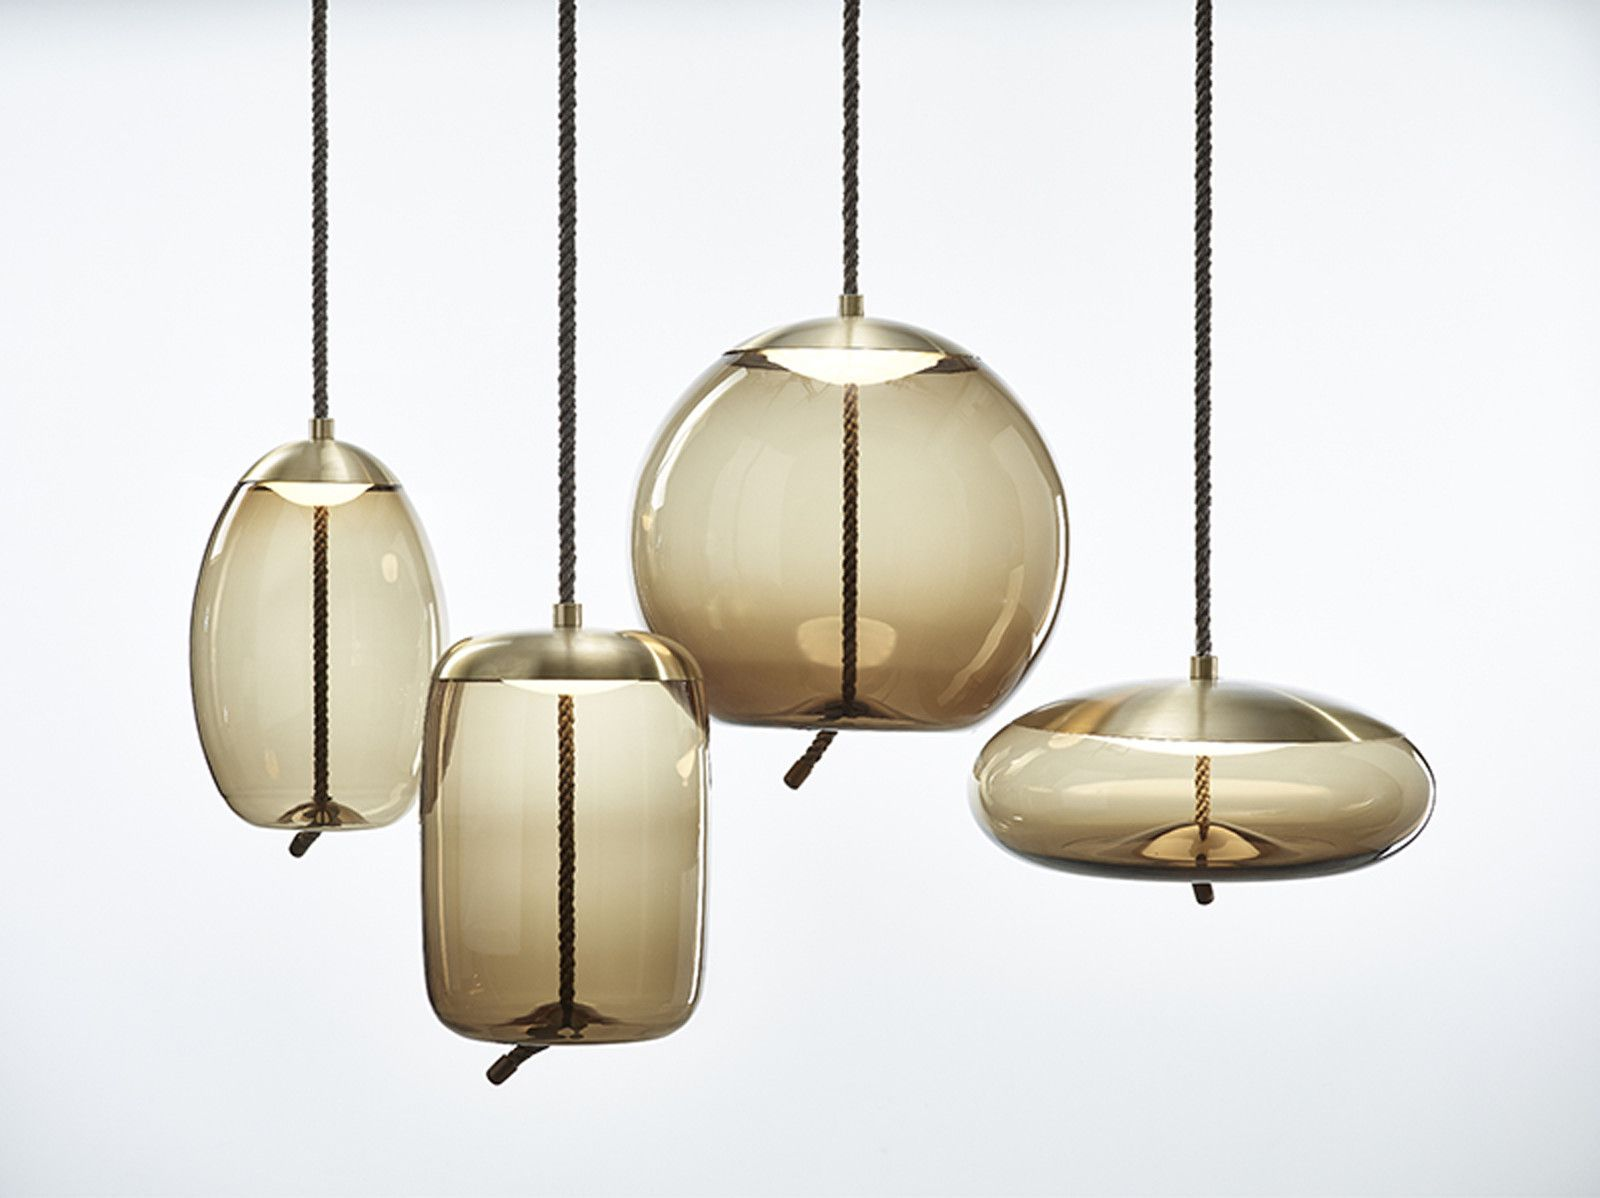 modern lighting concepts. The Knot Pendant Lights By Chiaramonte Marin For Czech Lighting Specialist Brokis Feature Brass And Glass. Modern Concepts